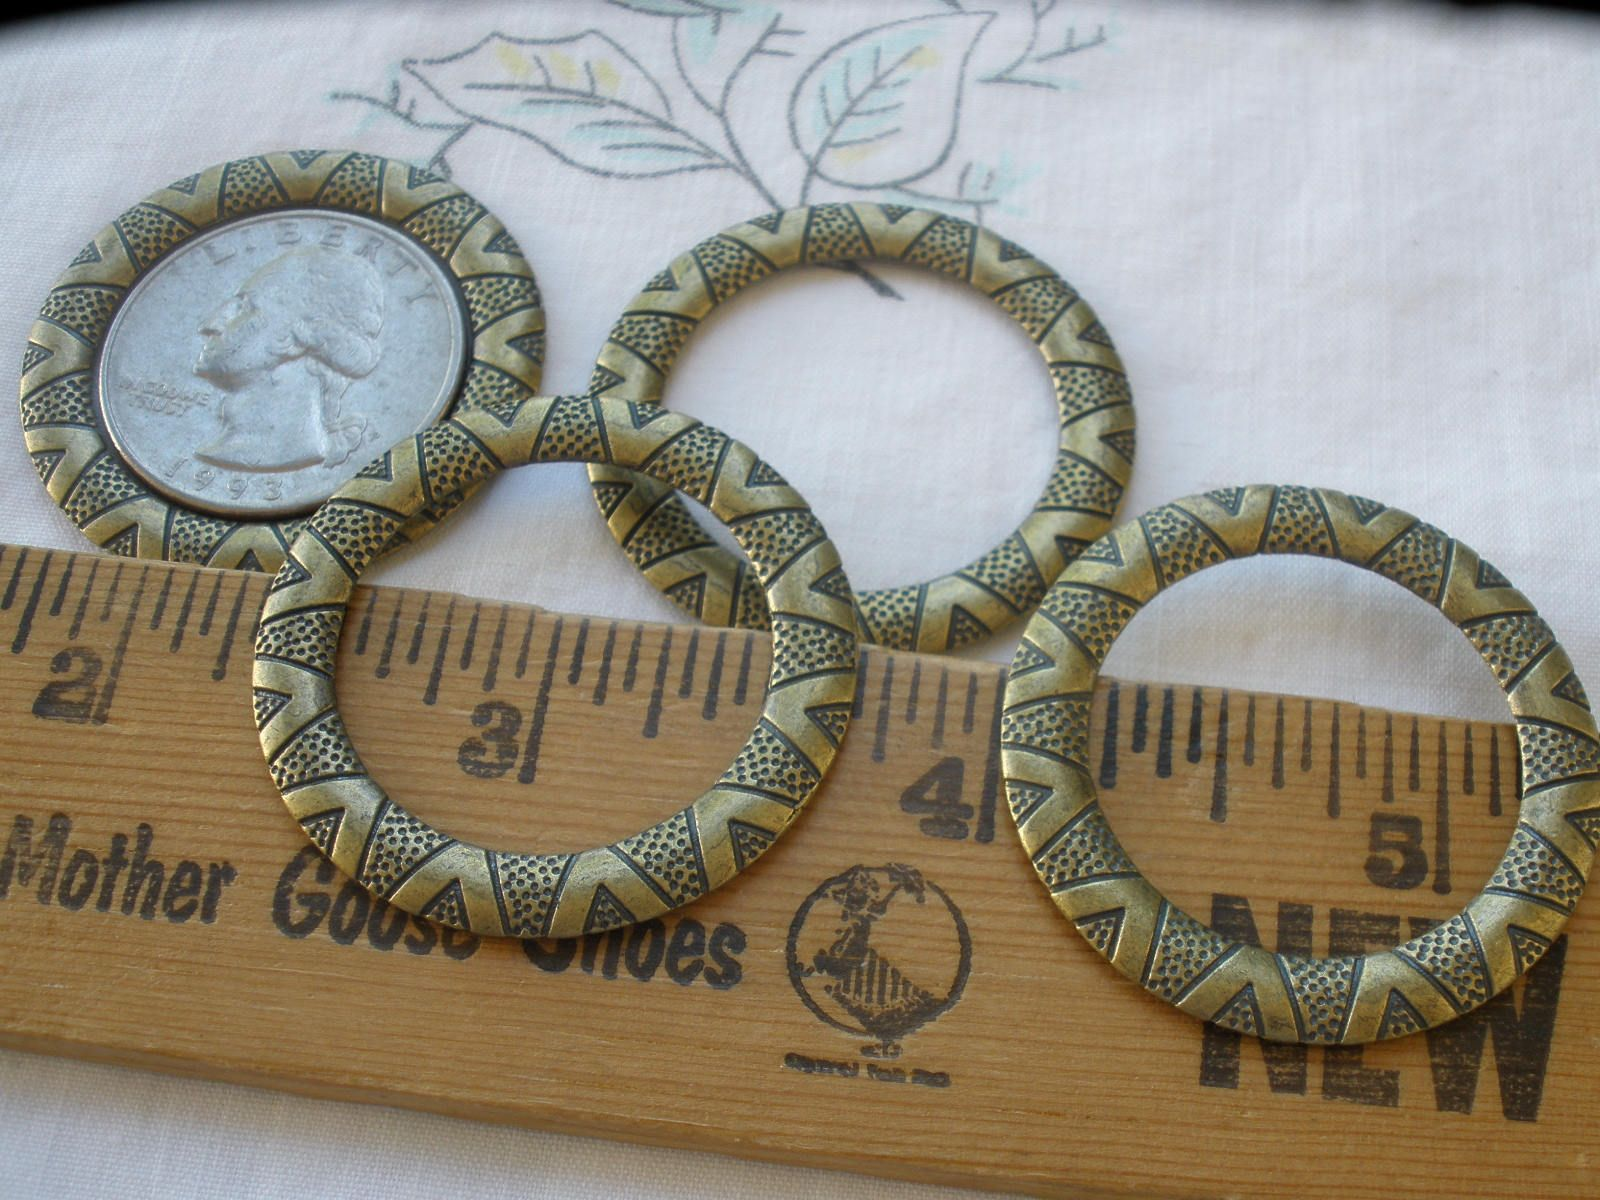 25mm ID 38mm OD Real Coconut Shell rings Round 1 opening 1.5 buckle 9 spacer rings purse O-ring macrame craft cafe curtain cabone ring